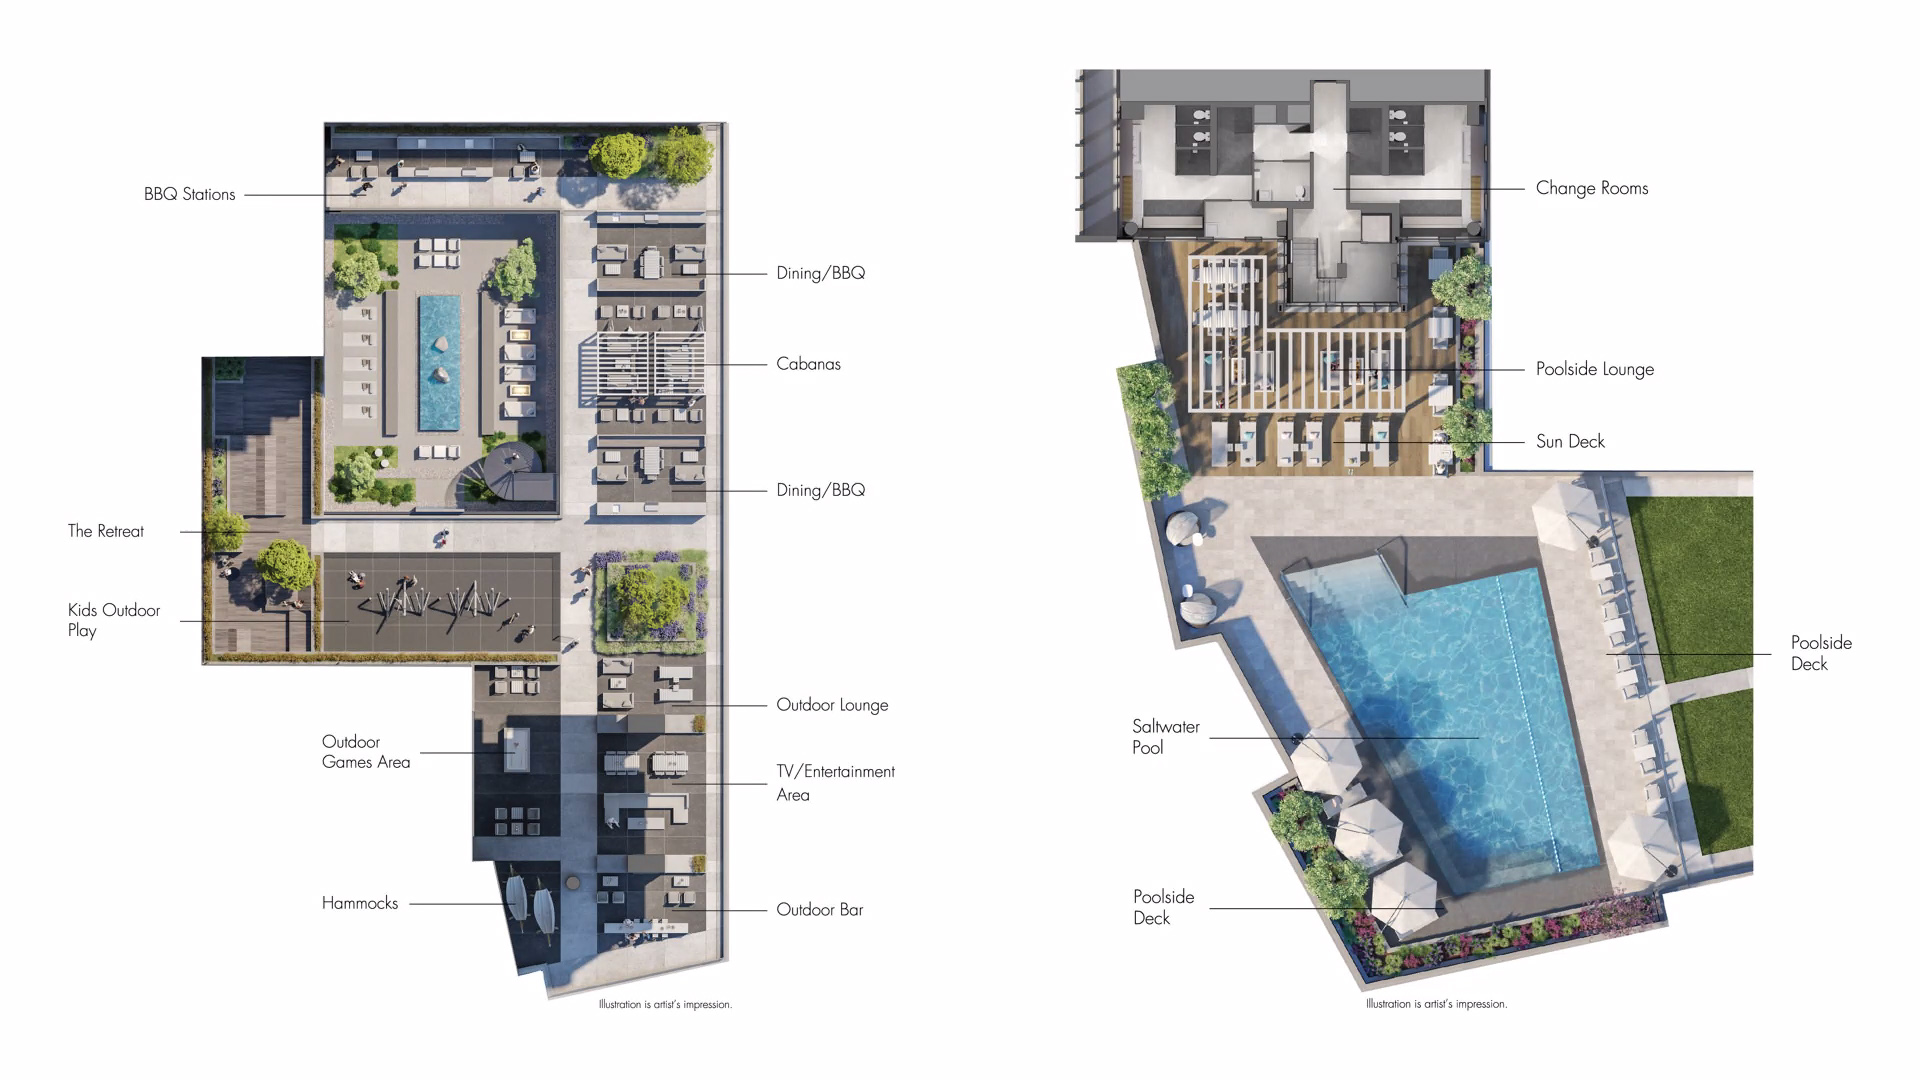 m4-condos-for-sale-mississauga-square-one-outdoor-terrace-amenities